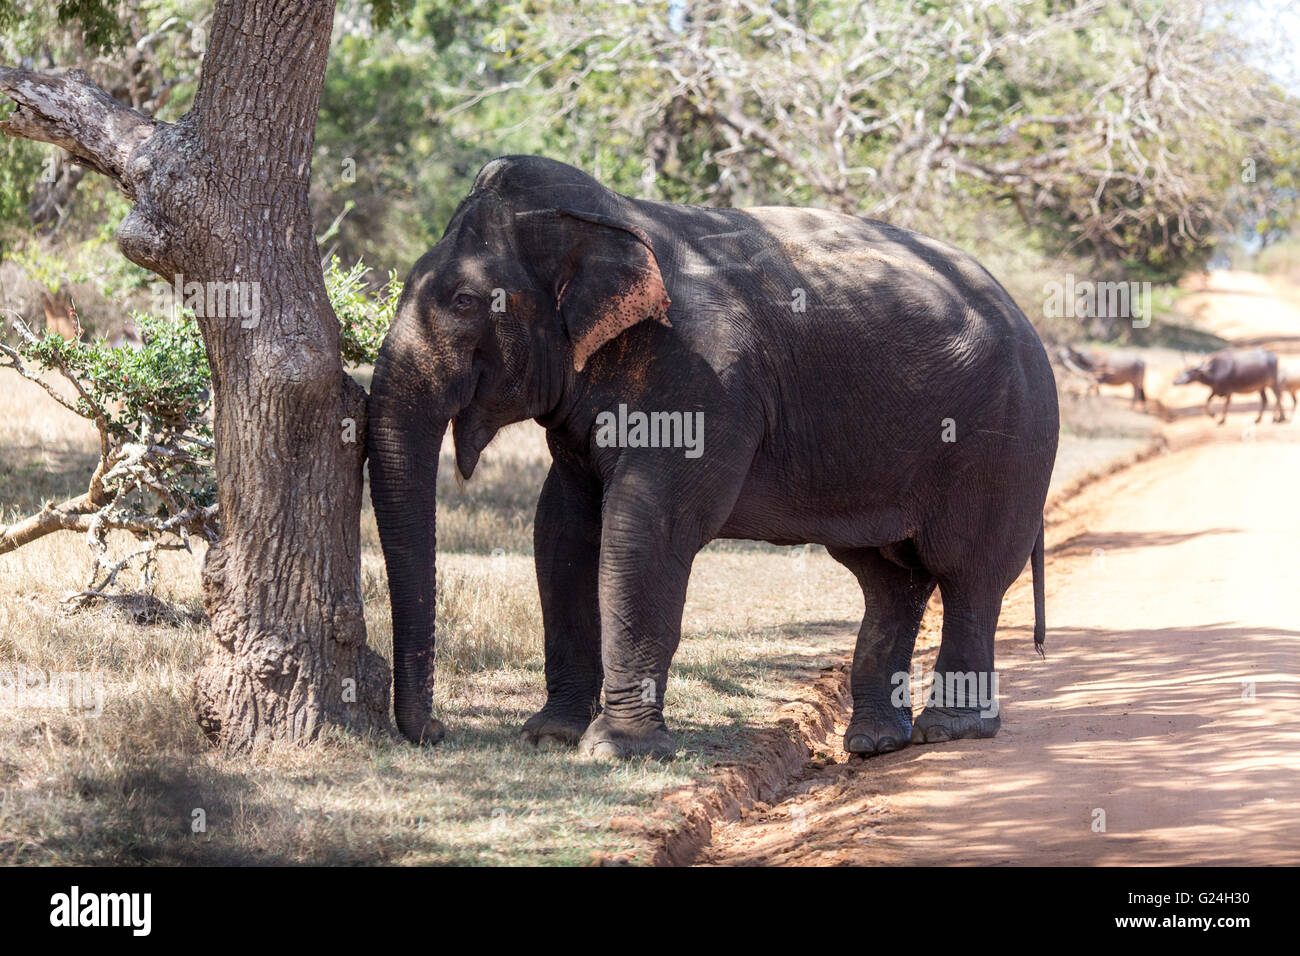 Sri Lanka Elephant High Resolution Stock Photography And Images Alamy Indian elephant african bush elephant elephantidae sri lankan elephant, abstract modern, mammal, painting png. https www alamy com stock photo yala national park sri lanka an elephant scratches against a tree 104592740 html